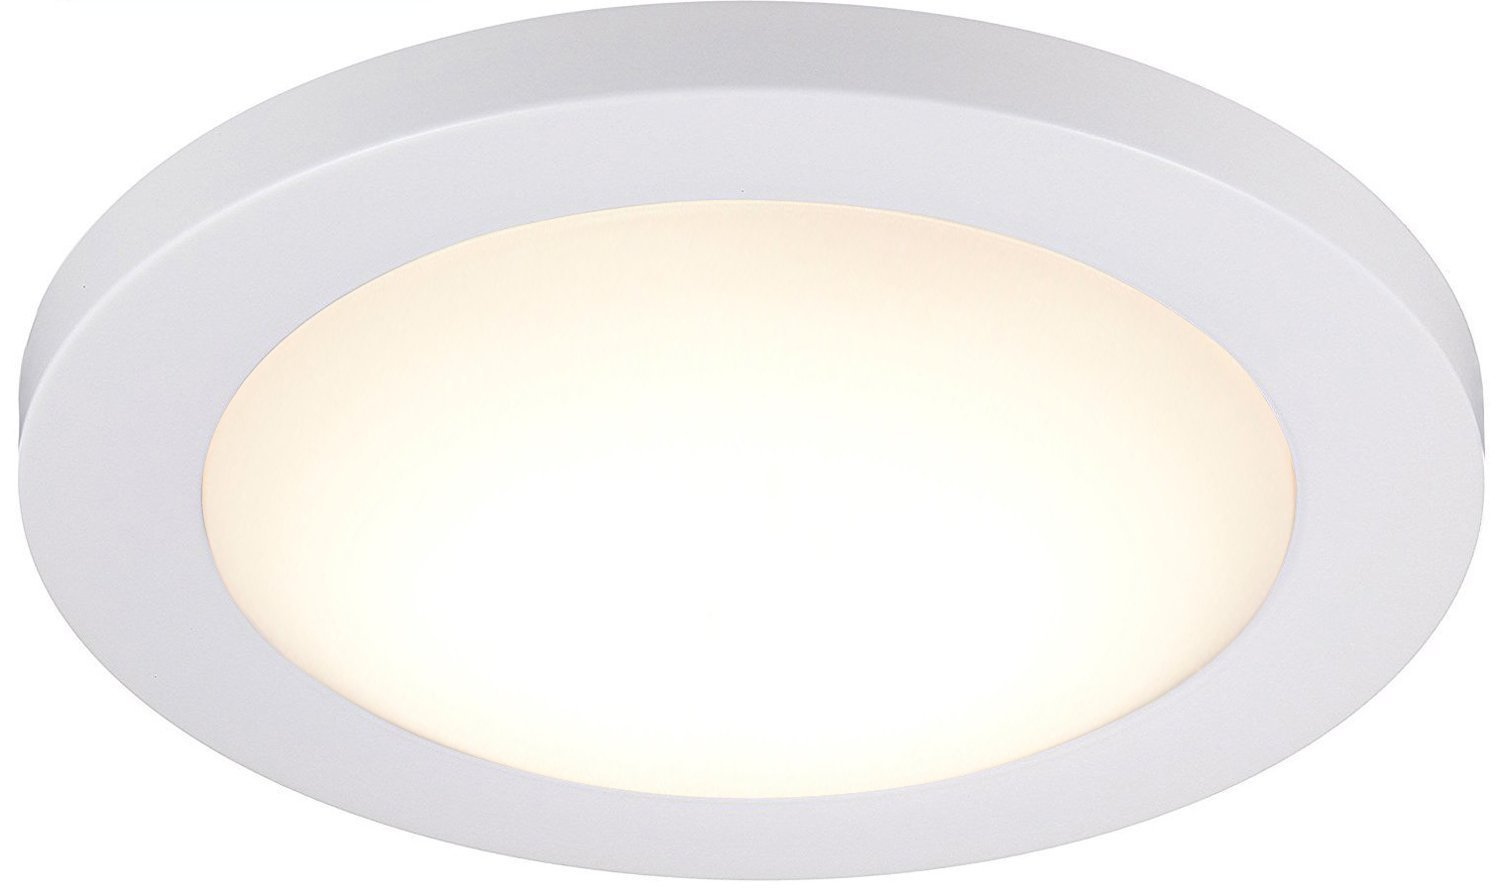 Cloudy Bay 12 inch LED Flush Mount Ceiling Light 4000K Cool White Dimmable 17W 1100lm -120W Incandescent Equivalent,White Finish by Cloudy Bay